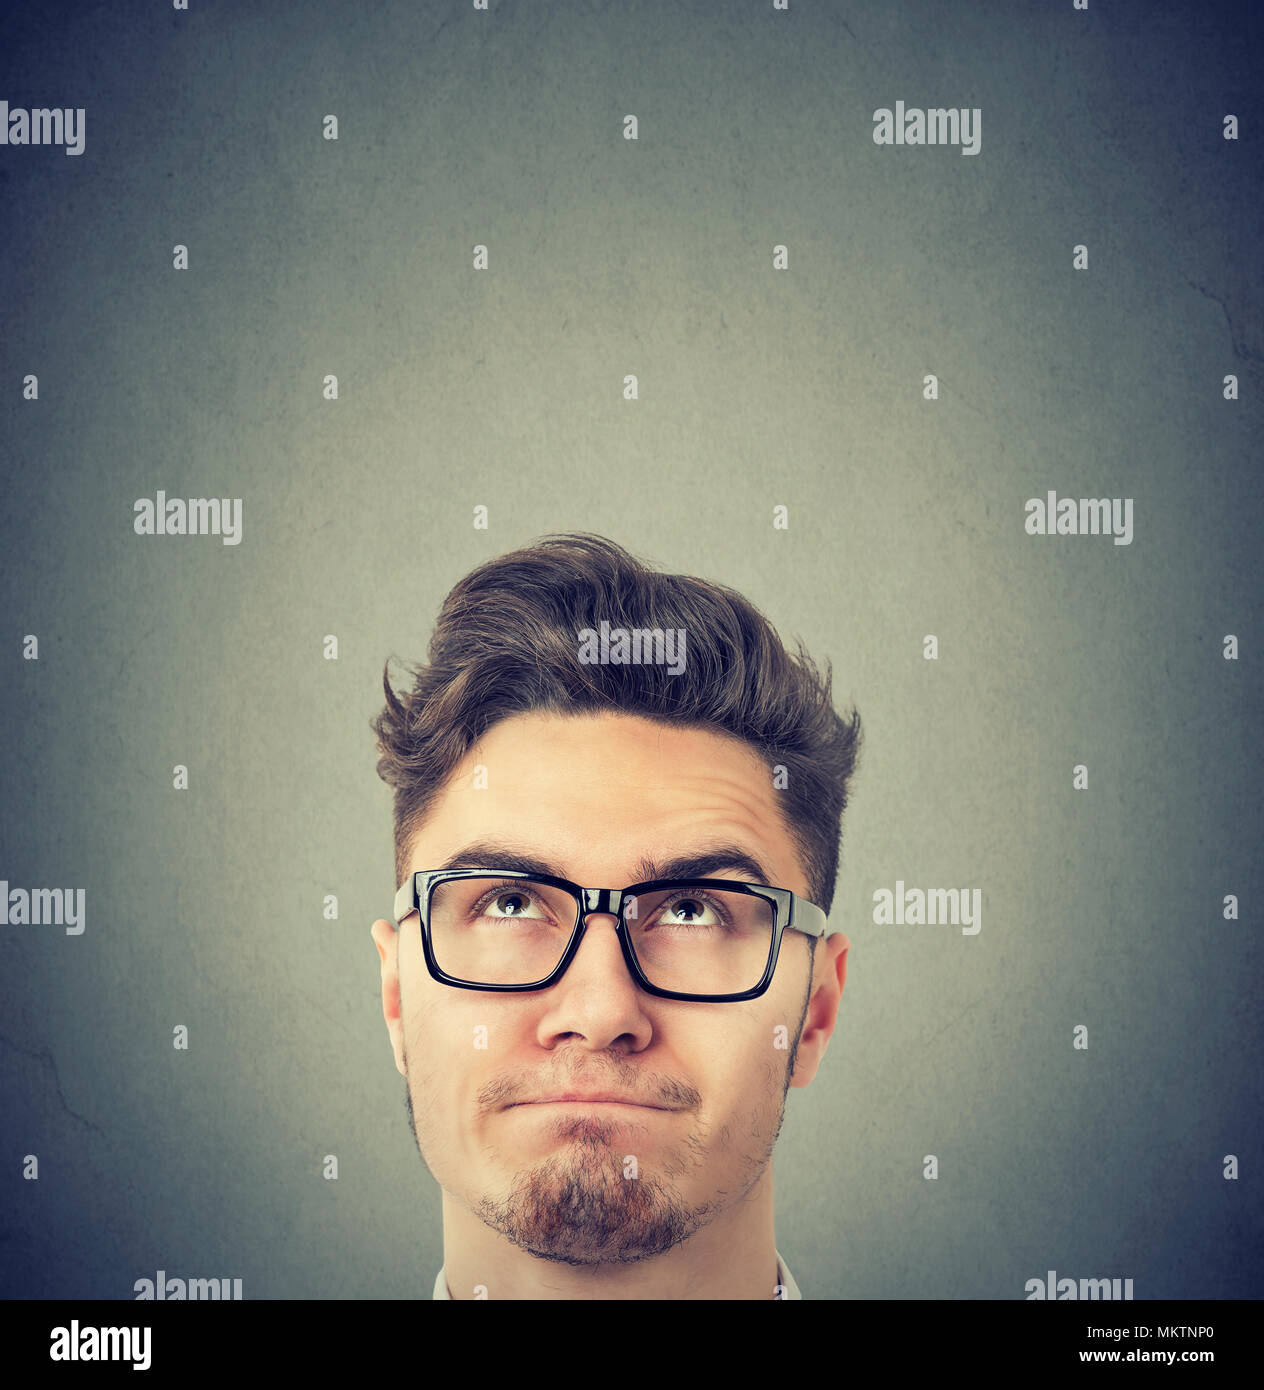 Serious young man wearing black glasses looking up thinking - Stock Image